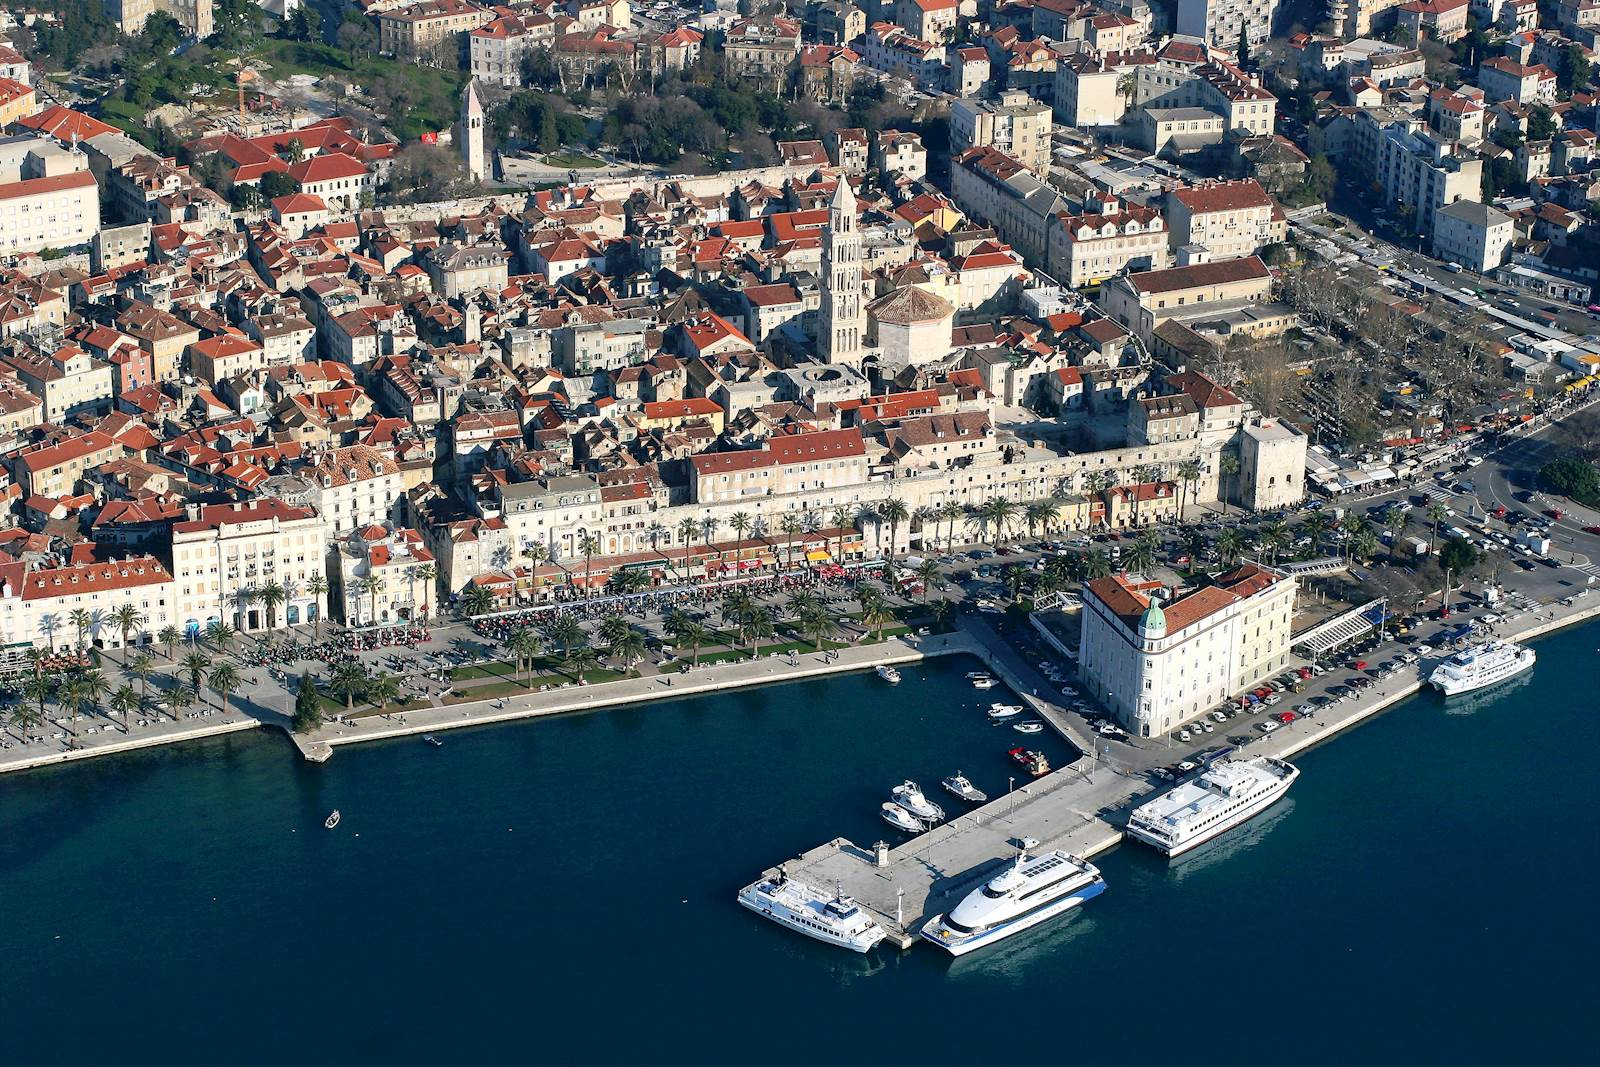 -images-excursions-split-private-tour-split-from-air.jpg